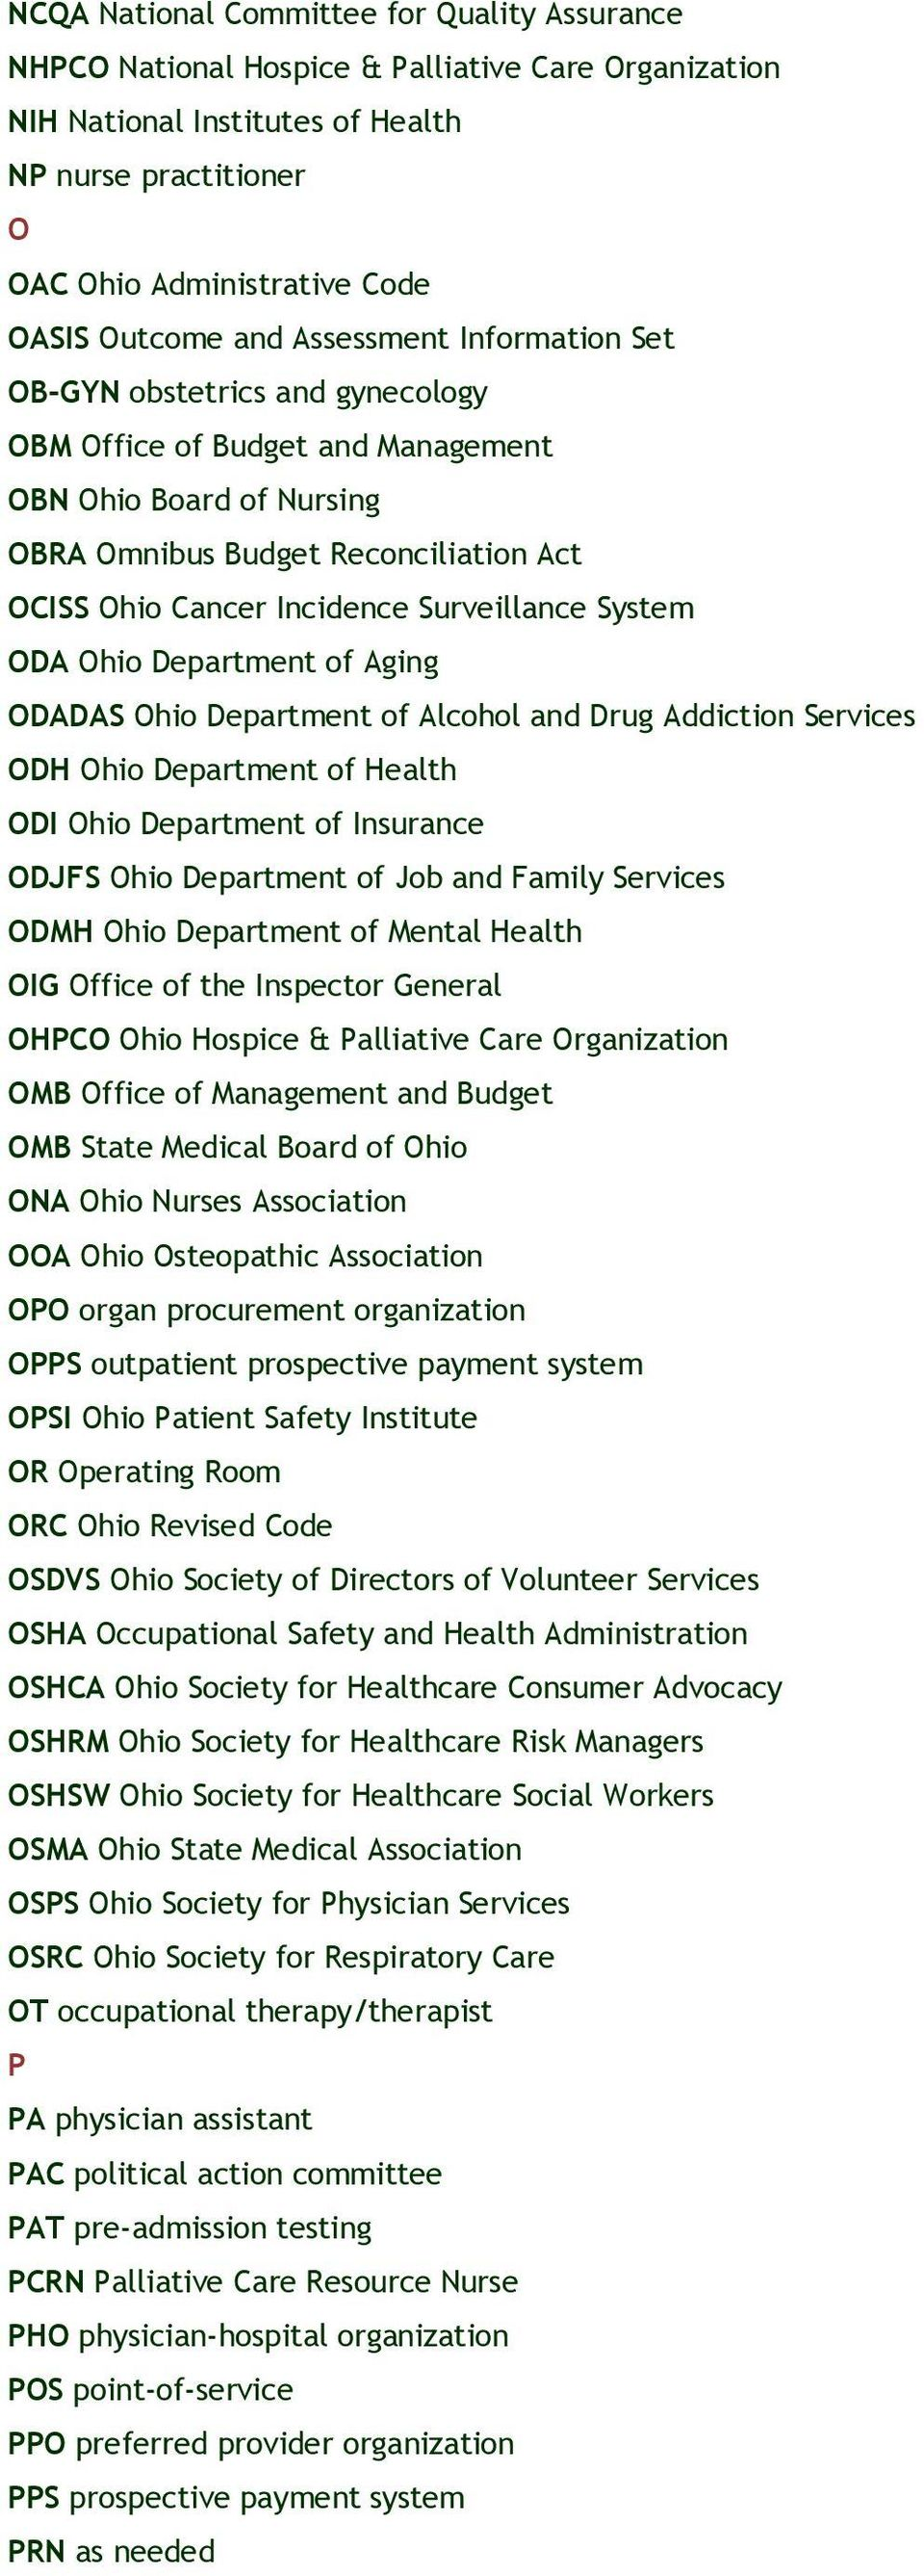 Incidence Surveillance System ODA Ohio Department of Aging ODADAS Ohio Department of Alcohol and Drug Addiction Services ODH Ohio Department of Health ODI Ohio Department of Insurance ODJFS Ohio